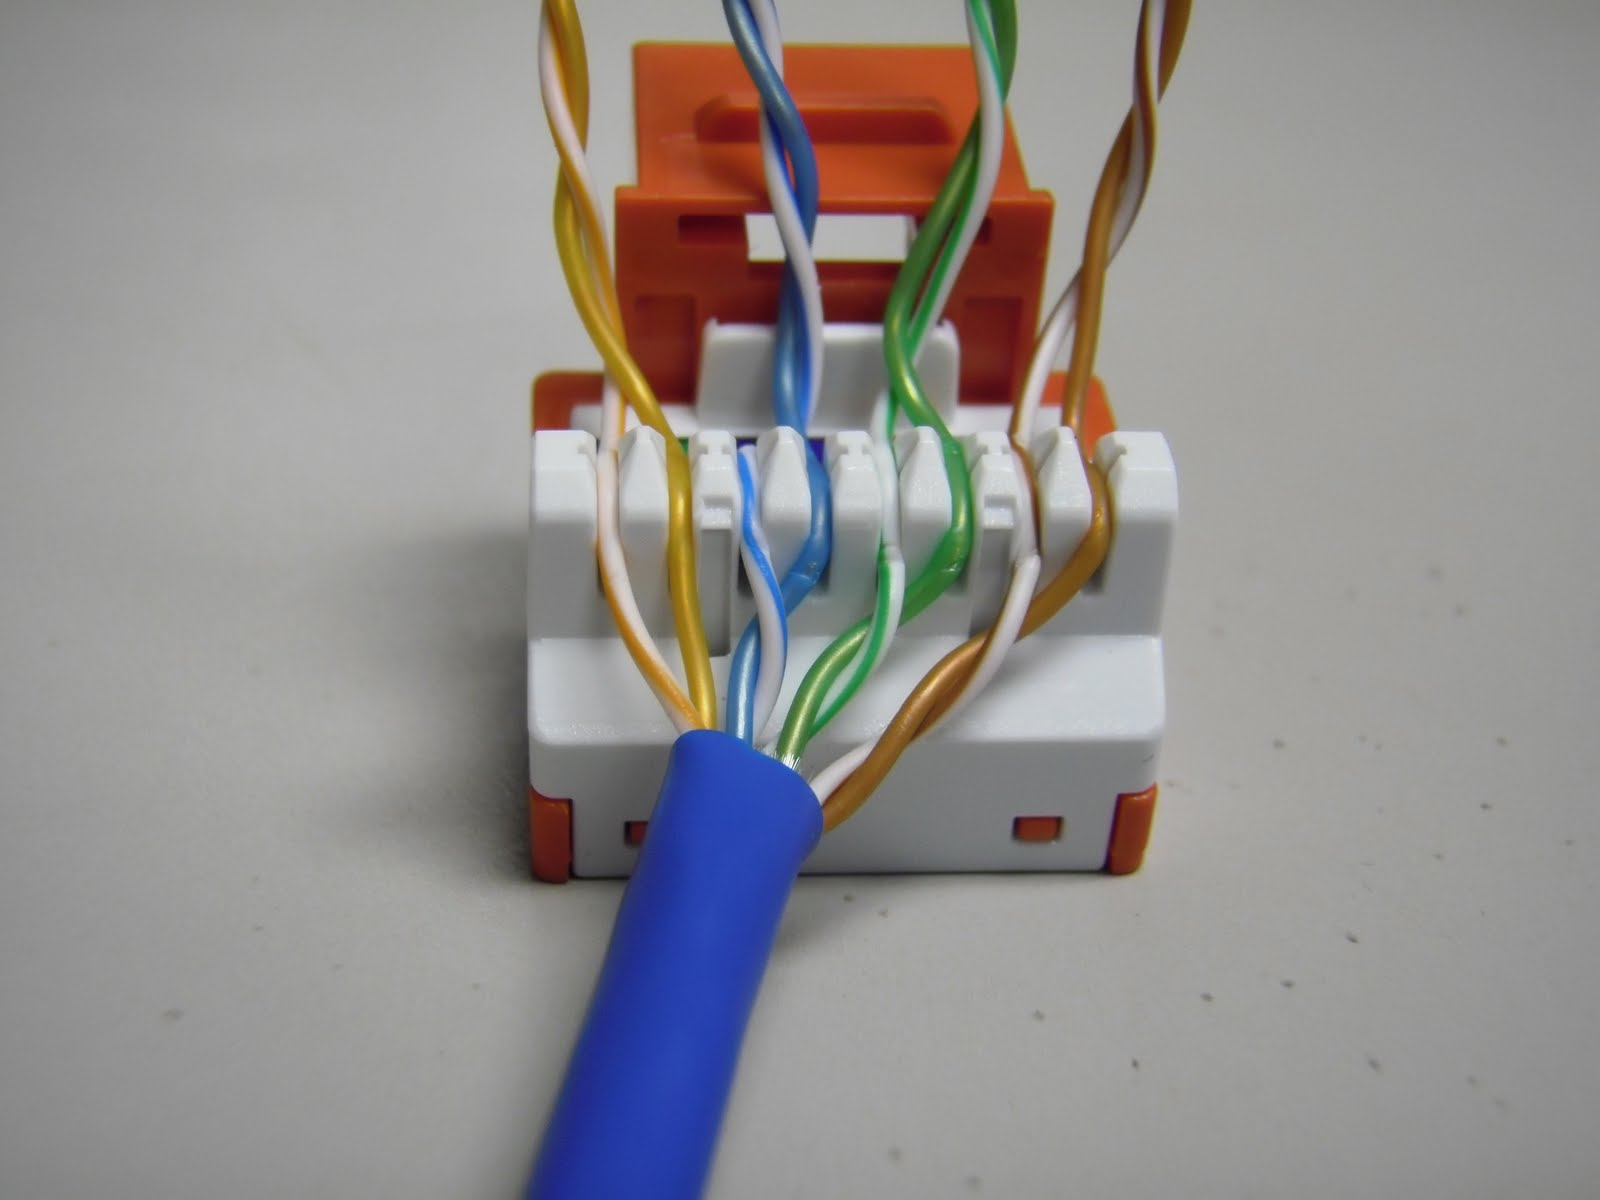 hight resolution of cat5e keystone jack wiring wiring diagram mega cat 5 keystone jack wiring color diagrams